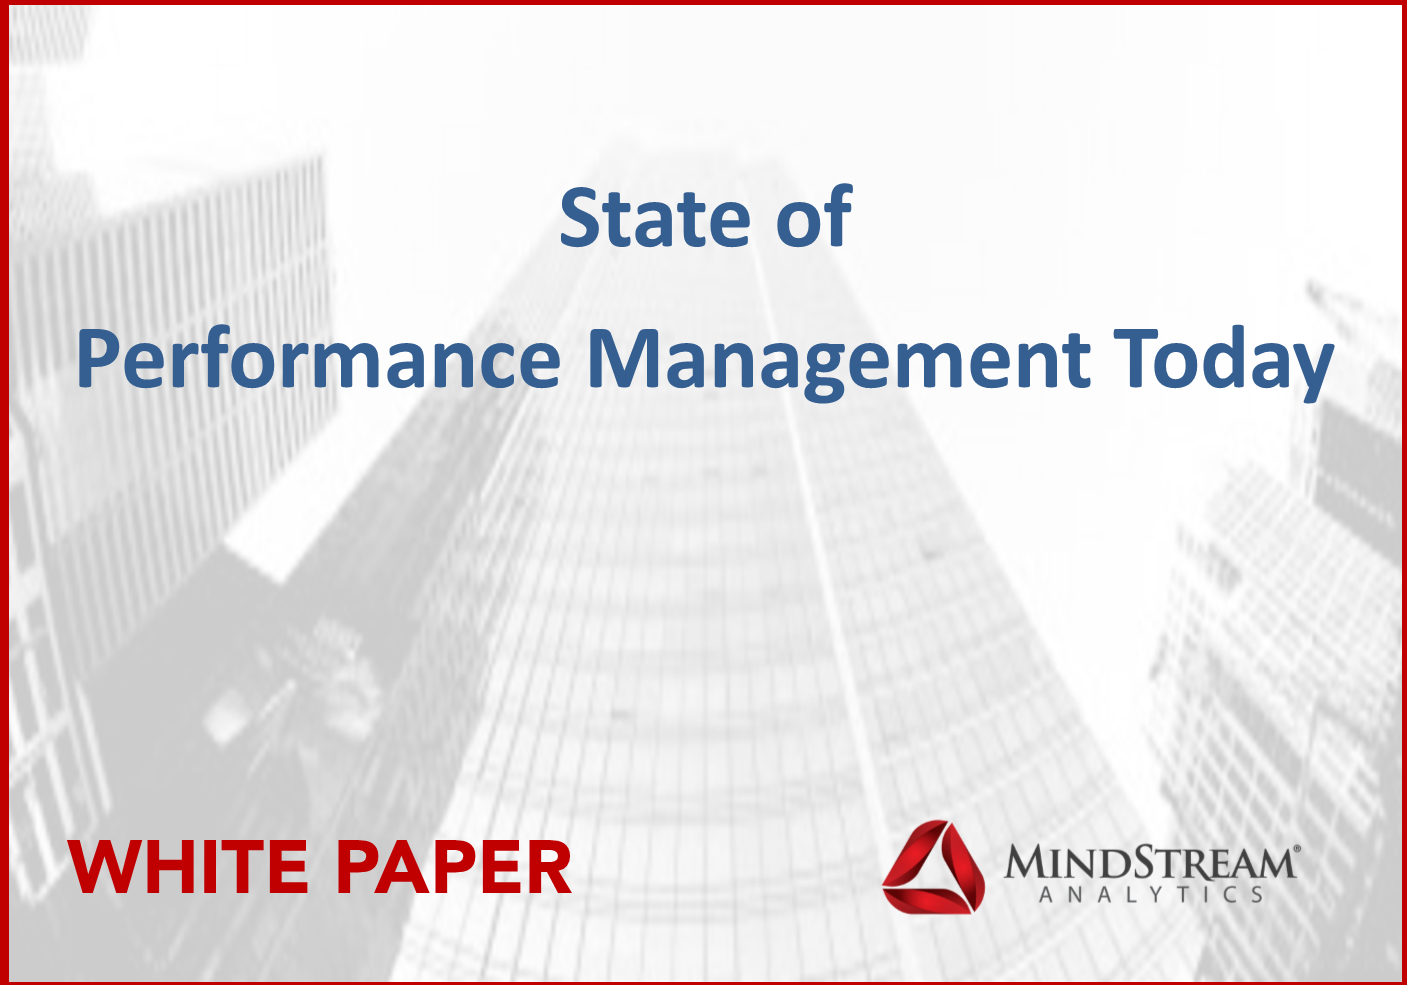 State of Performance Management Today